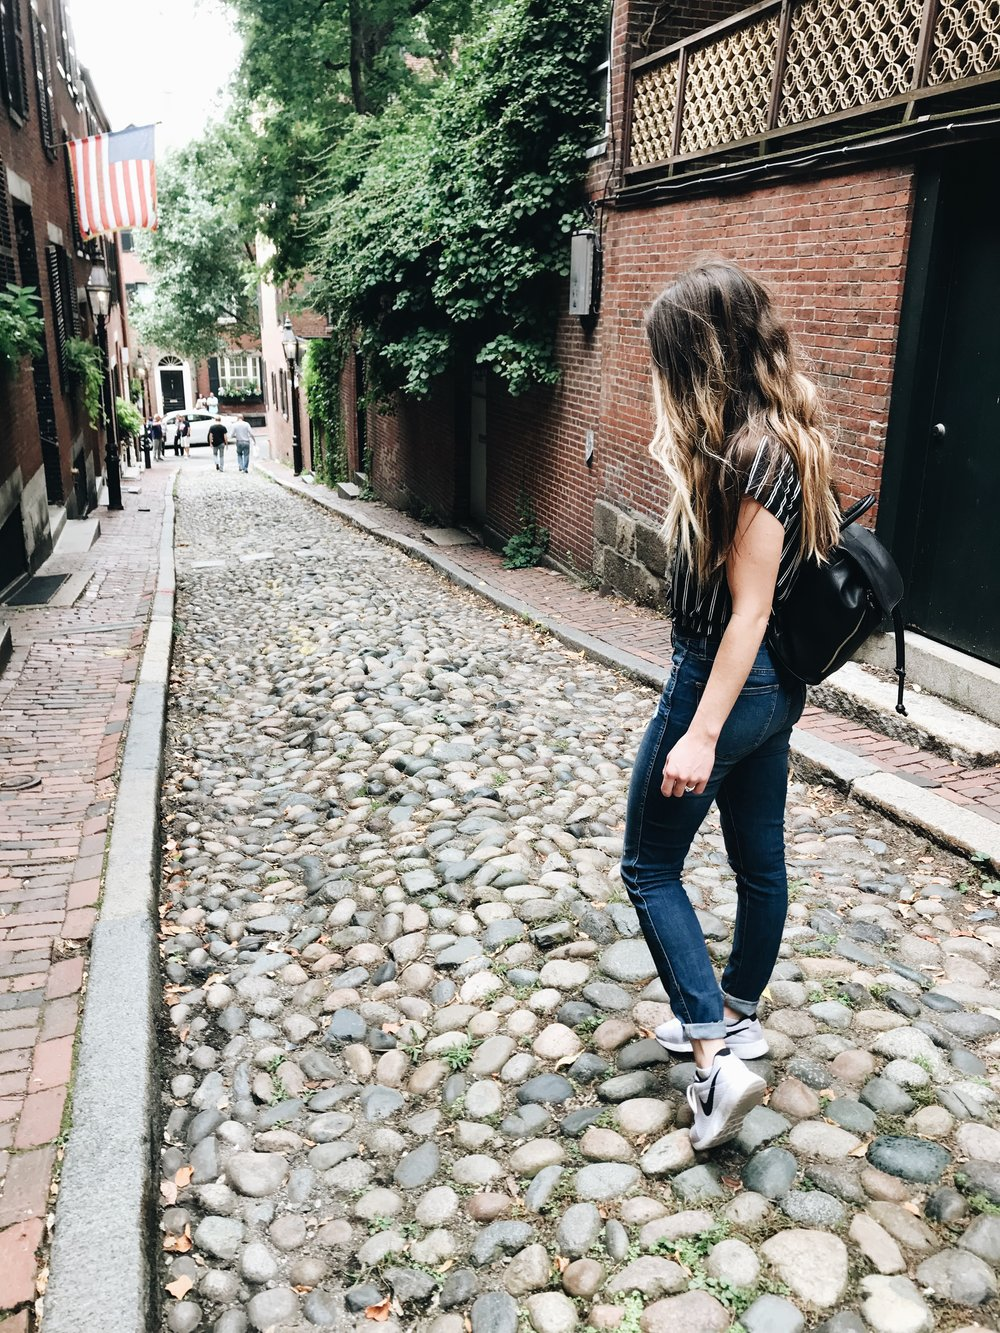 Acorn Street in Boston!